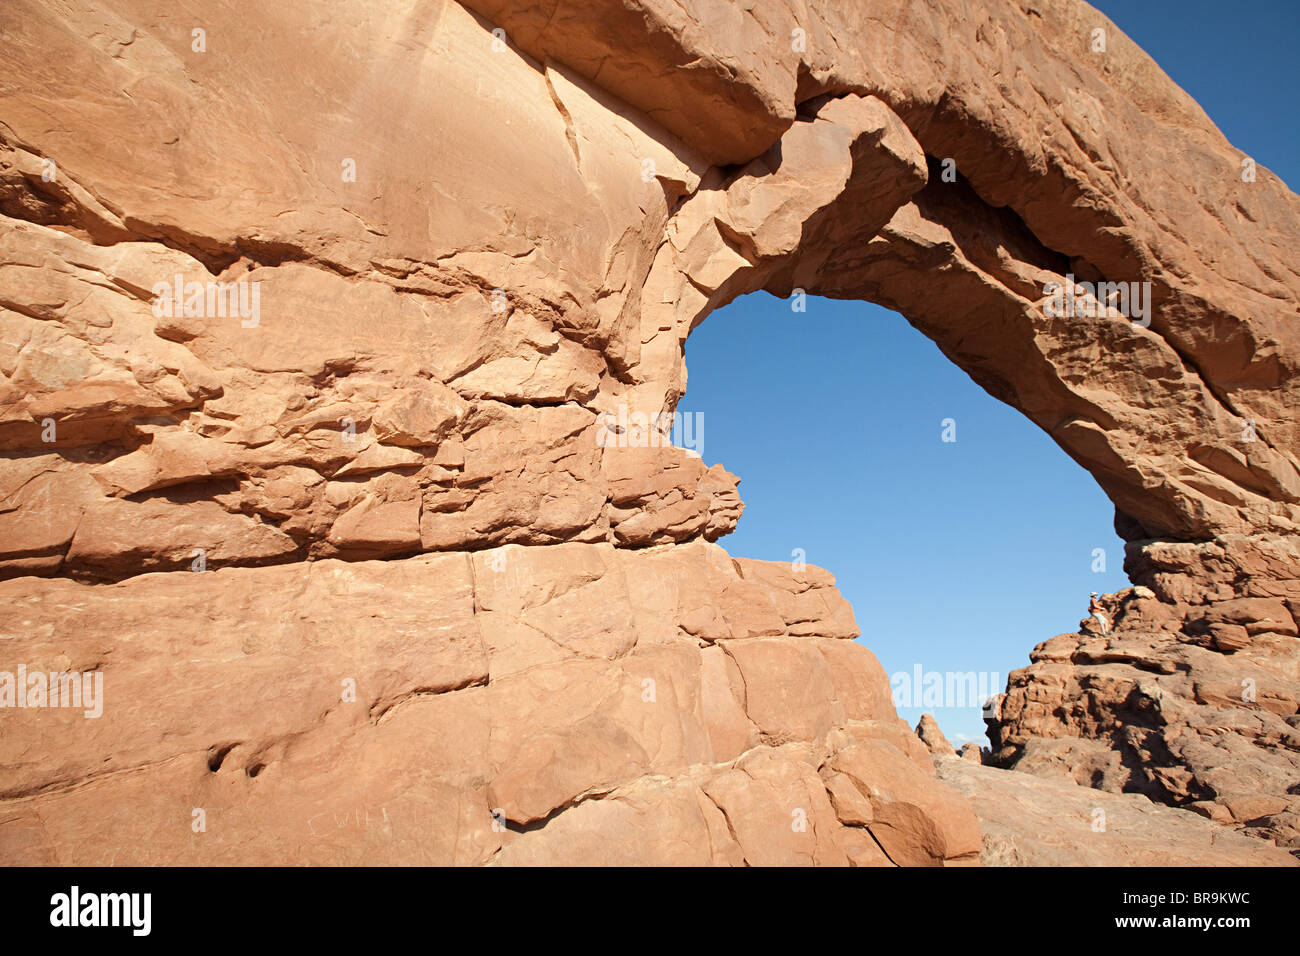 South Window, Arches National Park, Moab, Utah, USA - Stock Image